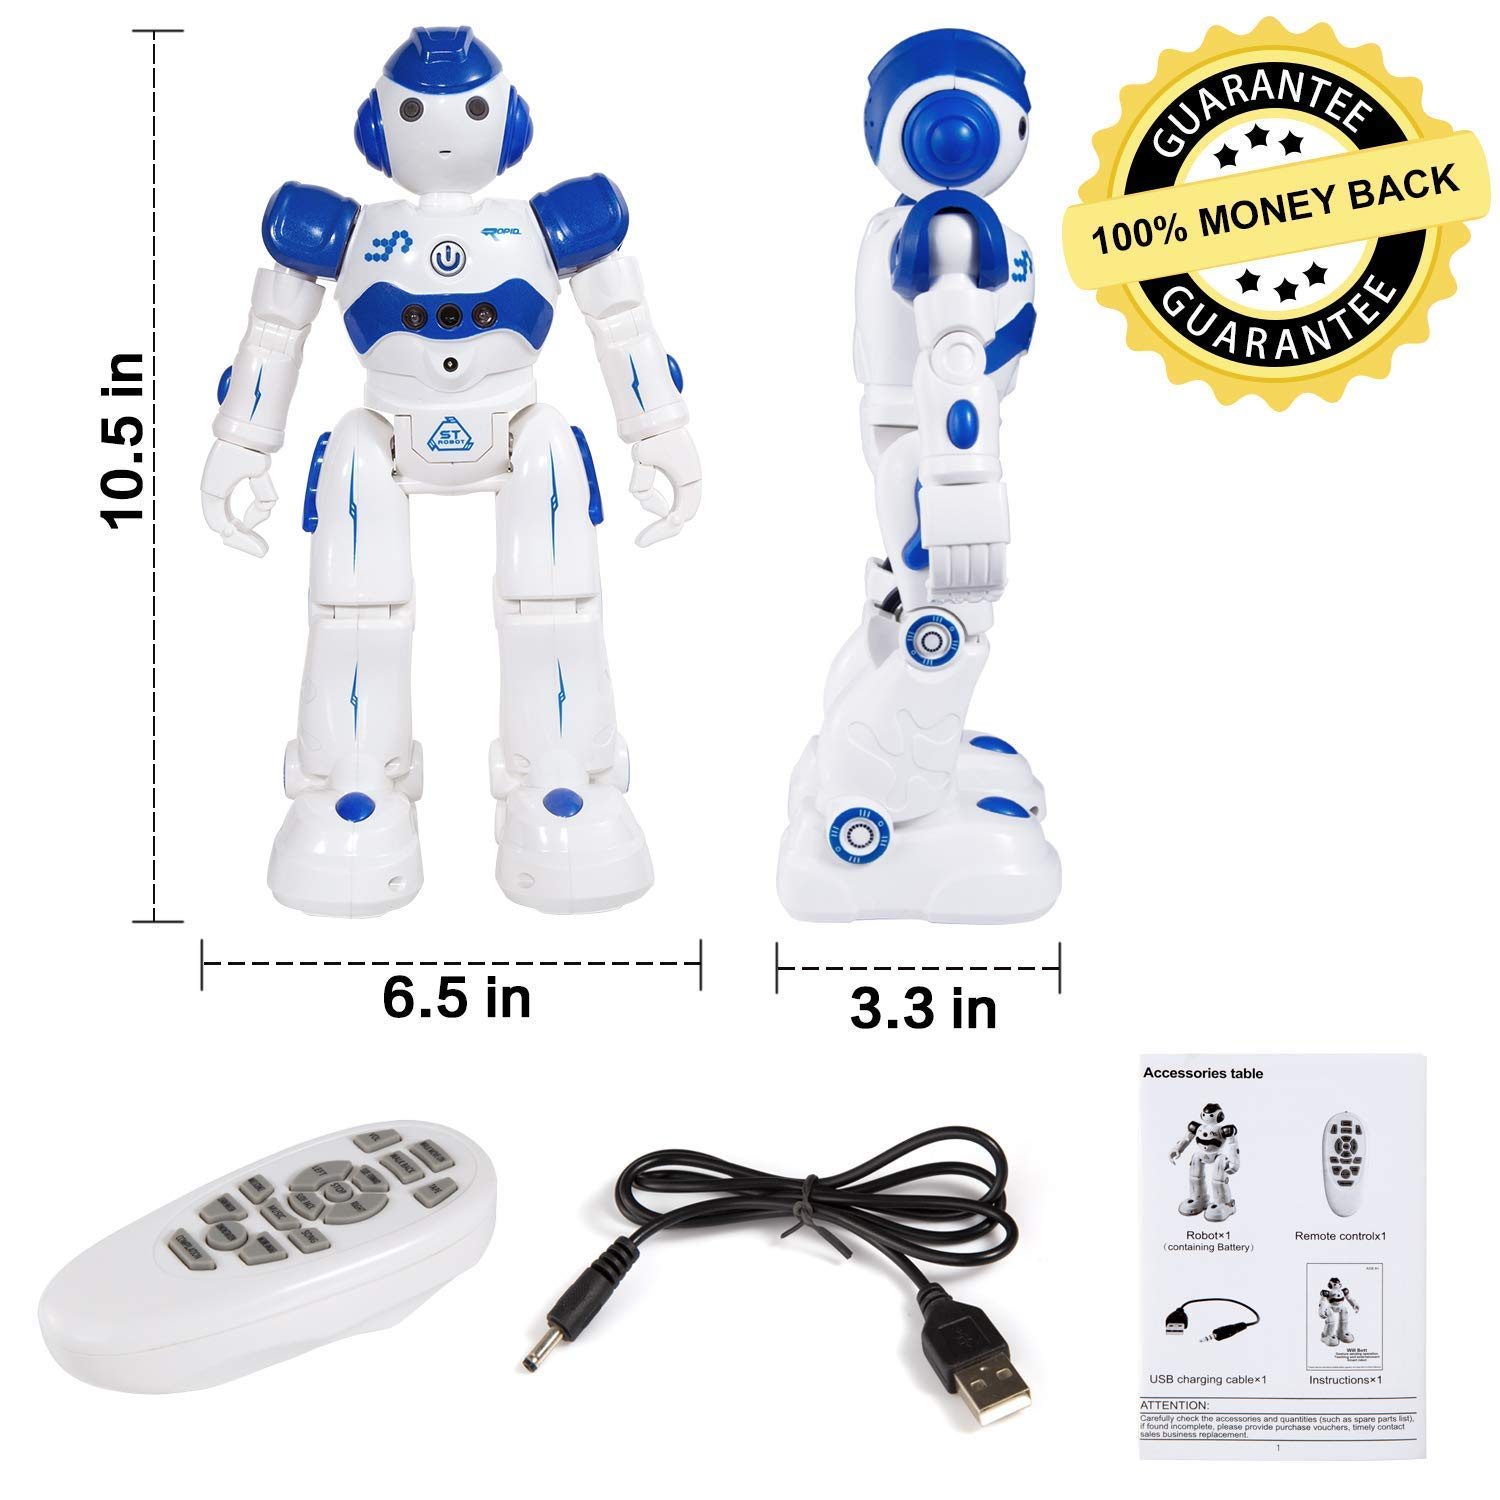 Taiker Remote Control Robot for Kids, Intellectual Gesture Sensor & RC Remote Control Rechargeable Robot Toys for Kids with Walking, Sliding, Turning, Singing, Dancing, Speaking and Teaching Science by Taiker (Image #7)